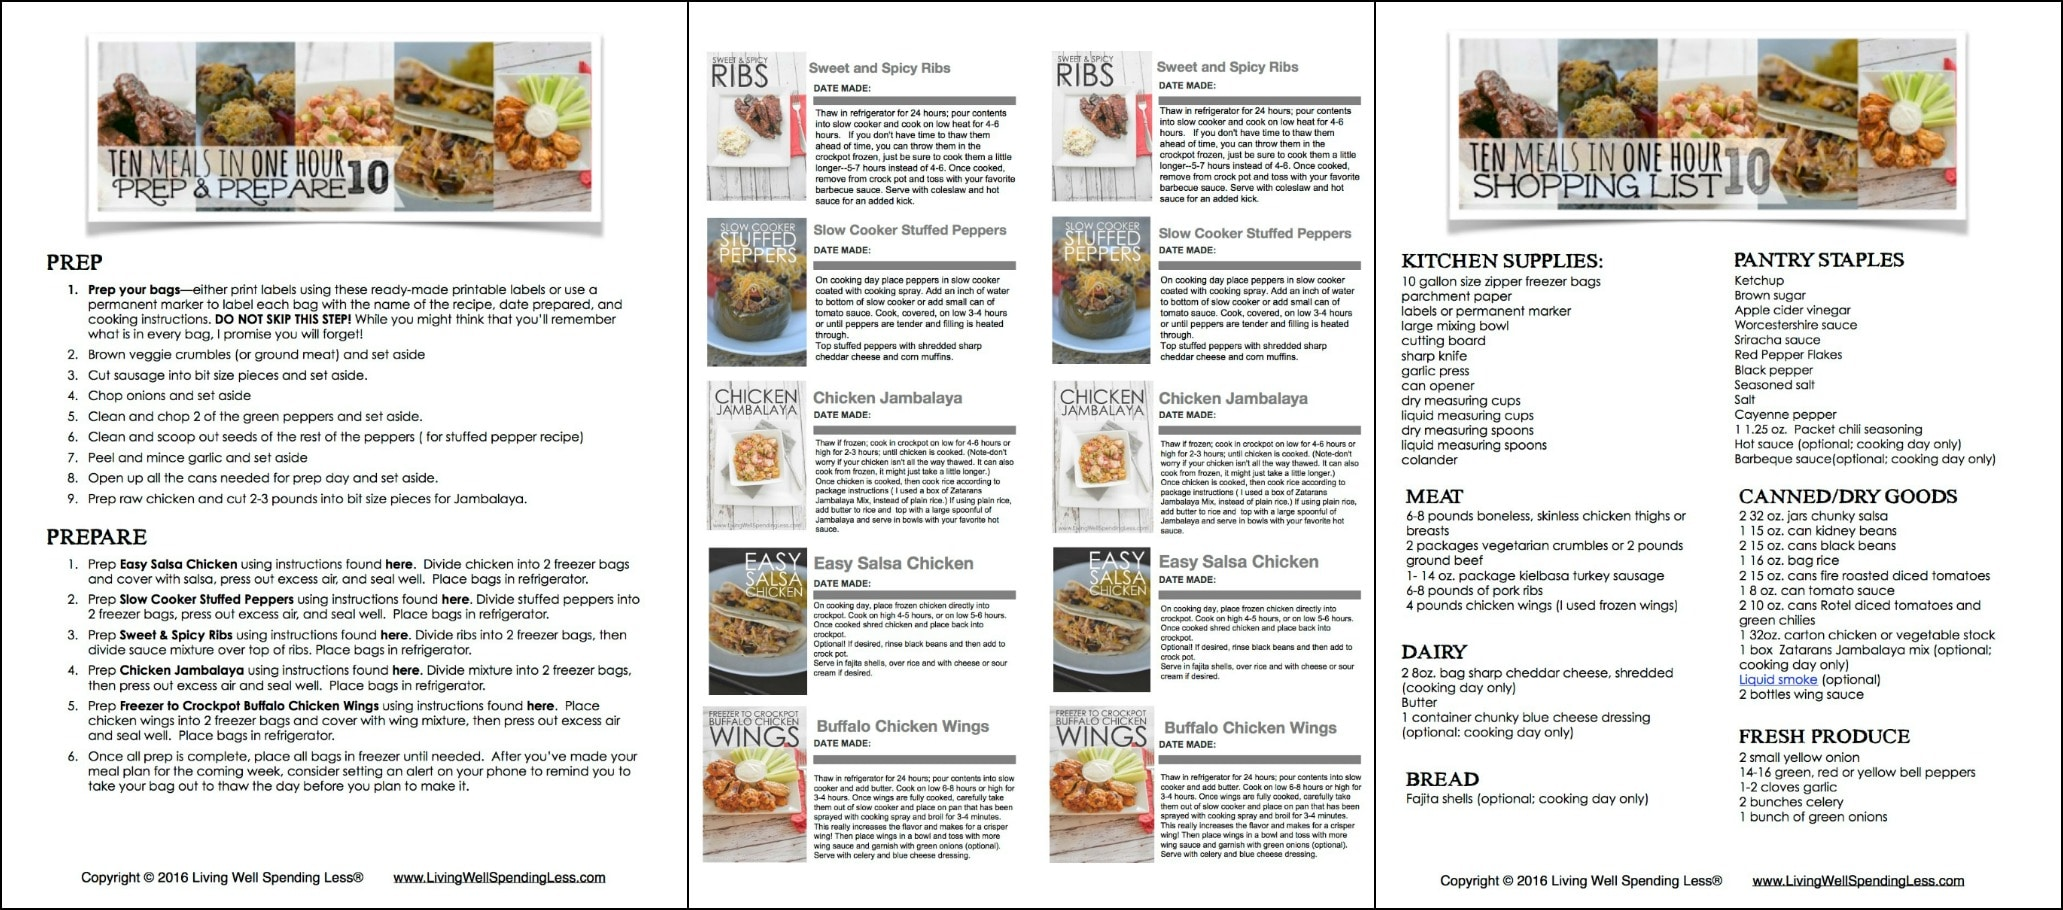 10 Meals in an Hour 10 3 Printables